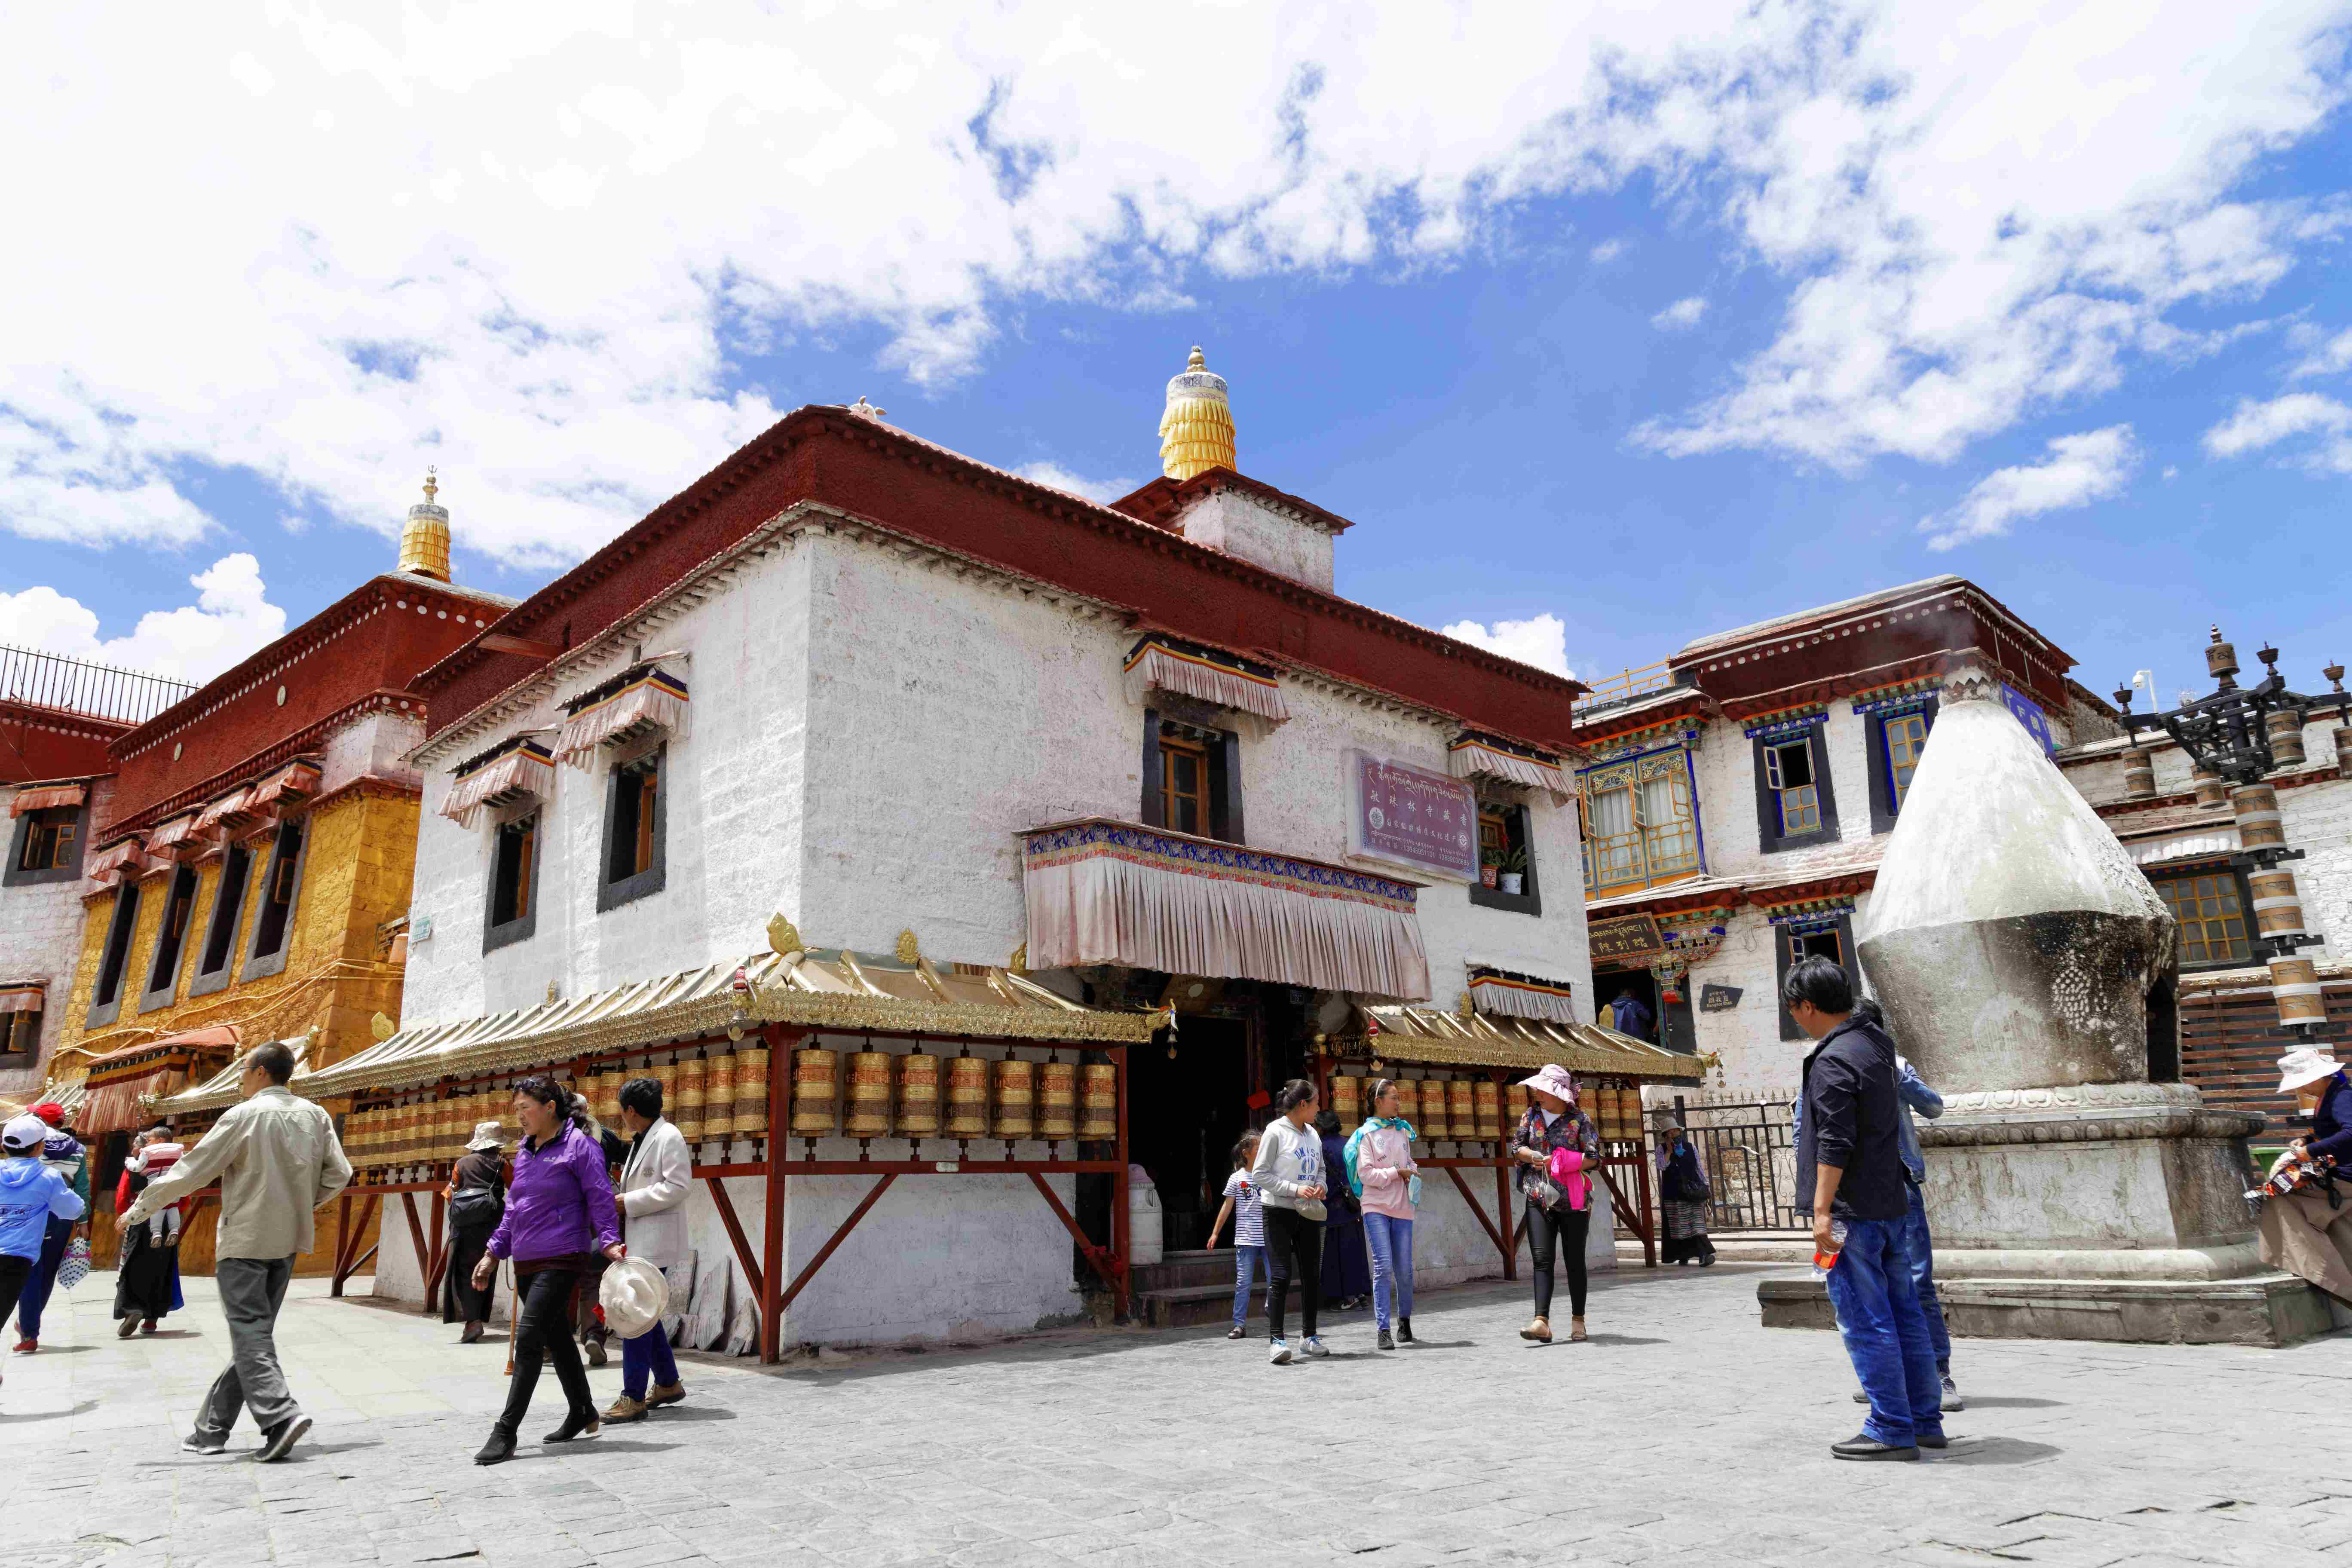 Mani Lhakhang Temple on Barkhor Street in Lhasa